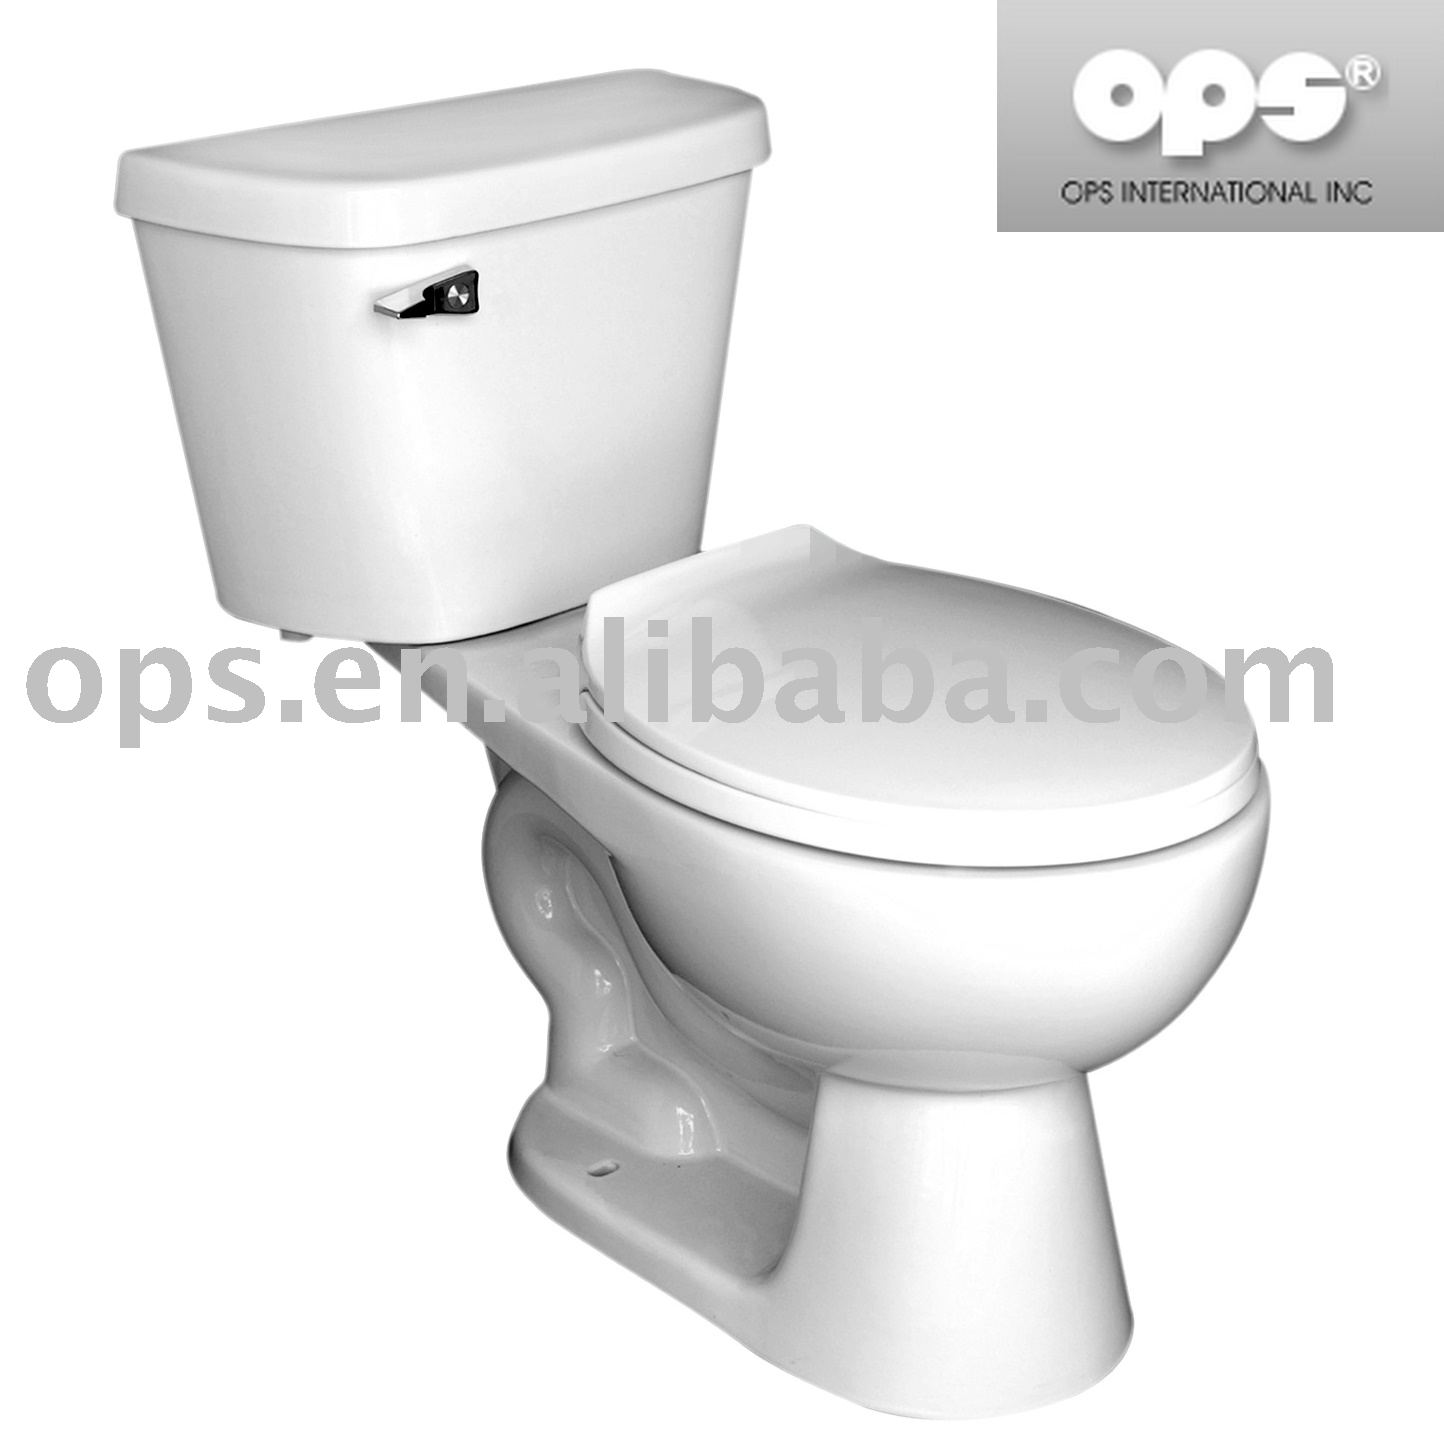 UPC & cUPC Certified Two-Piece Toilet (T/X-6810)